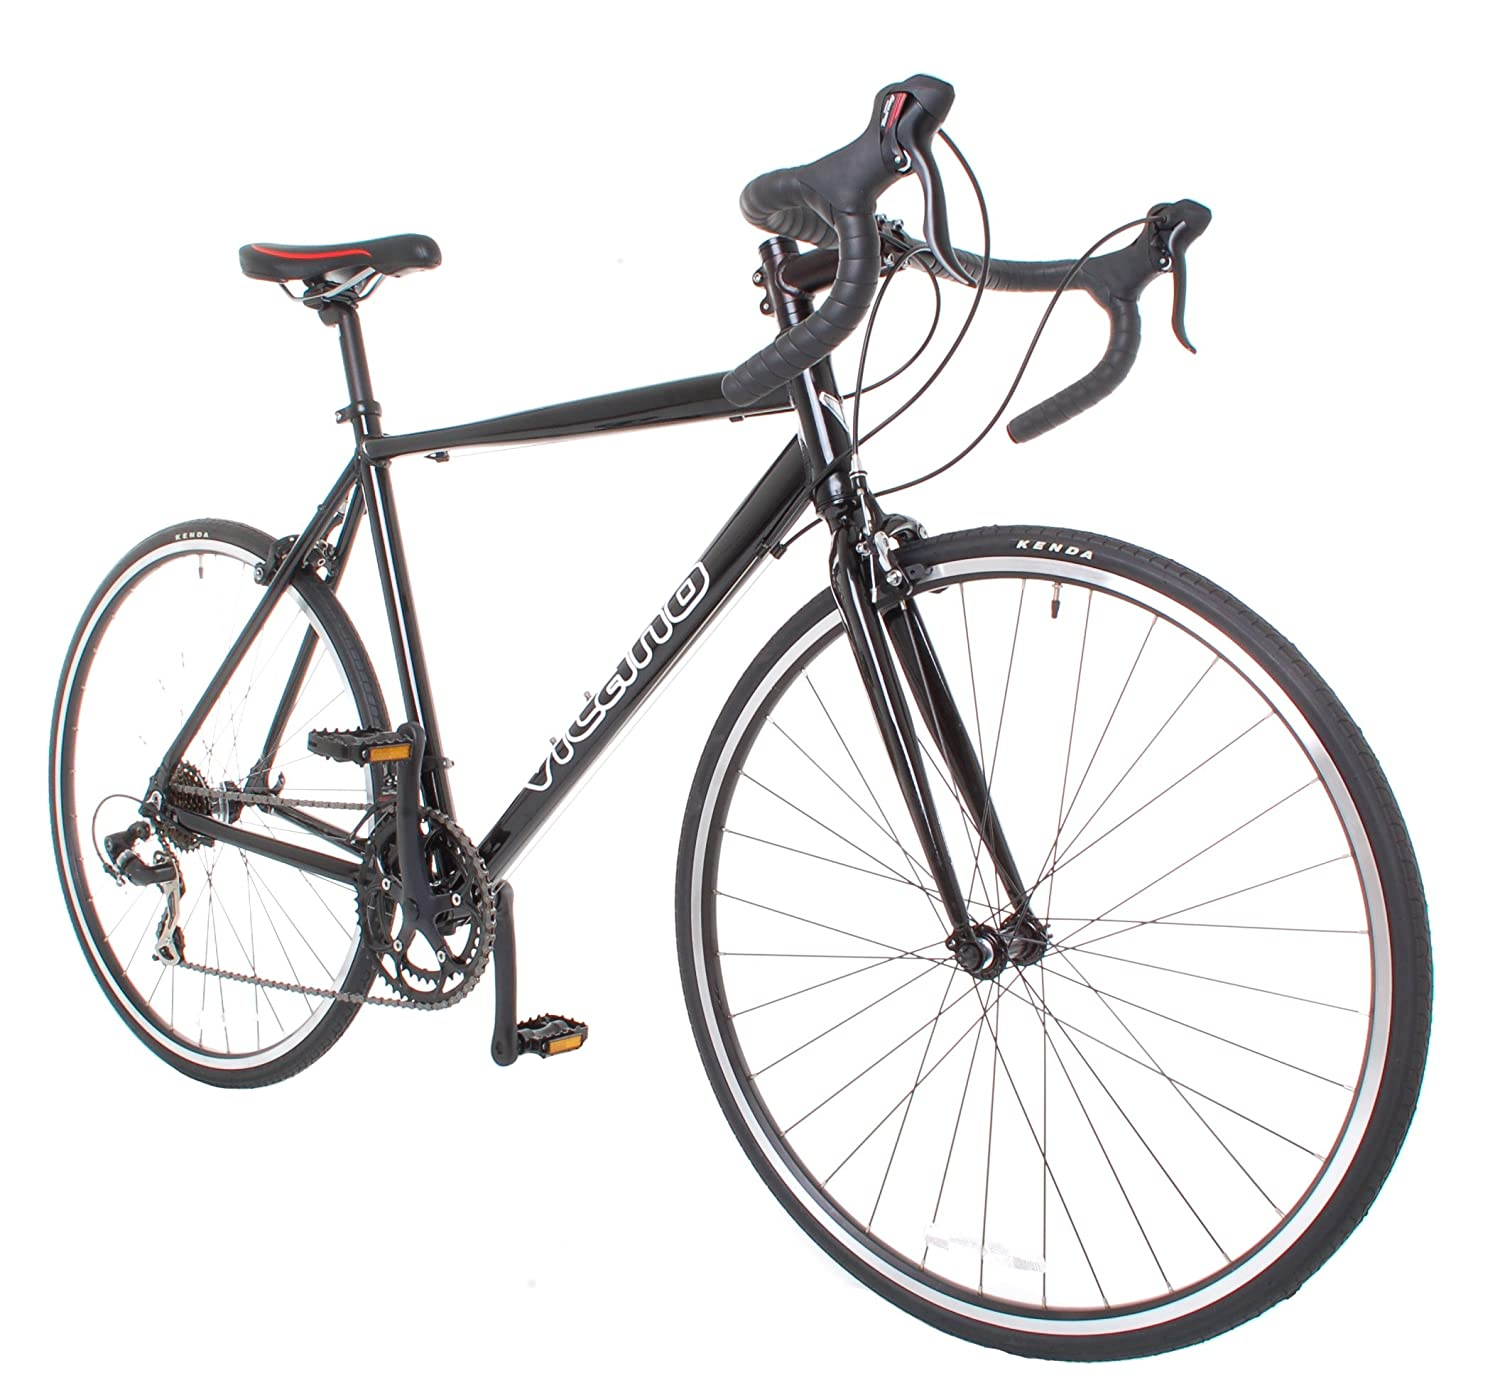 Best Entry level road bike from Vilano